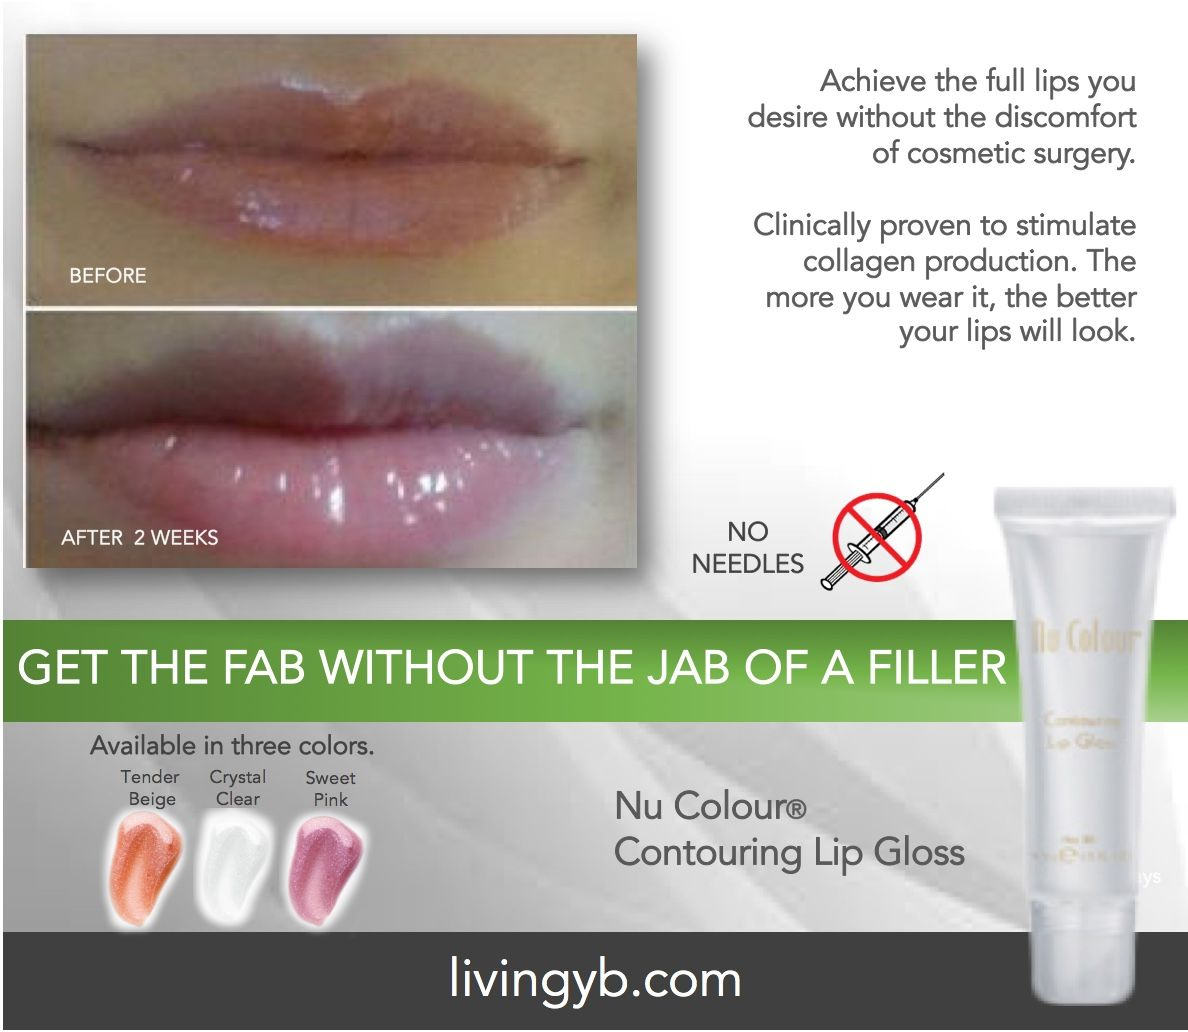 Nu Colour® Contouring Lip Gloss  Get the fab without the jab